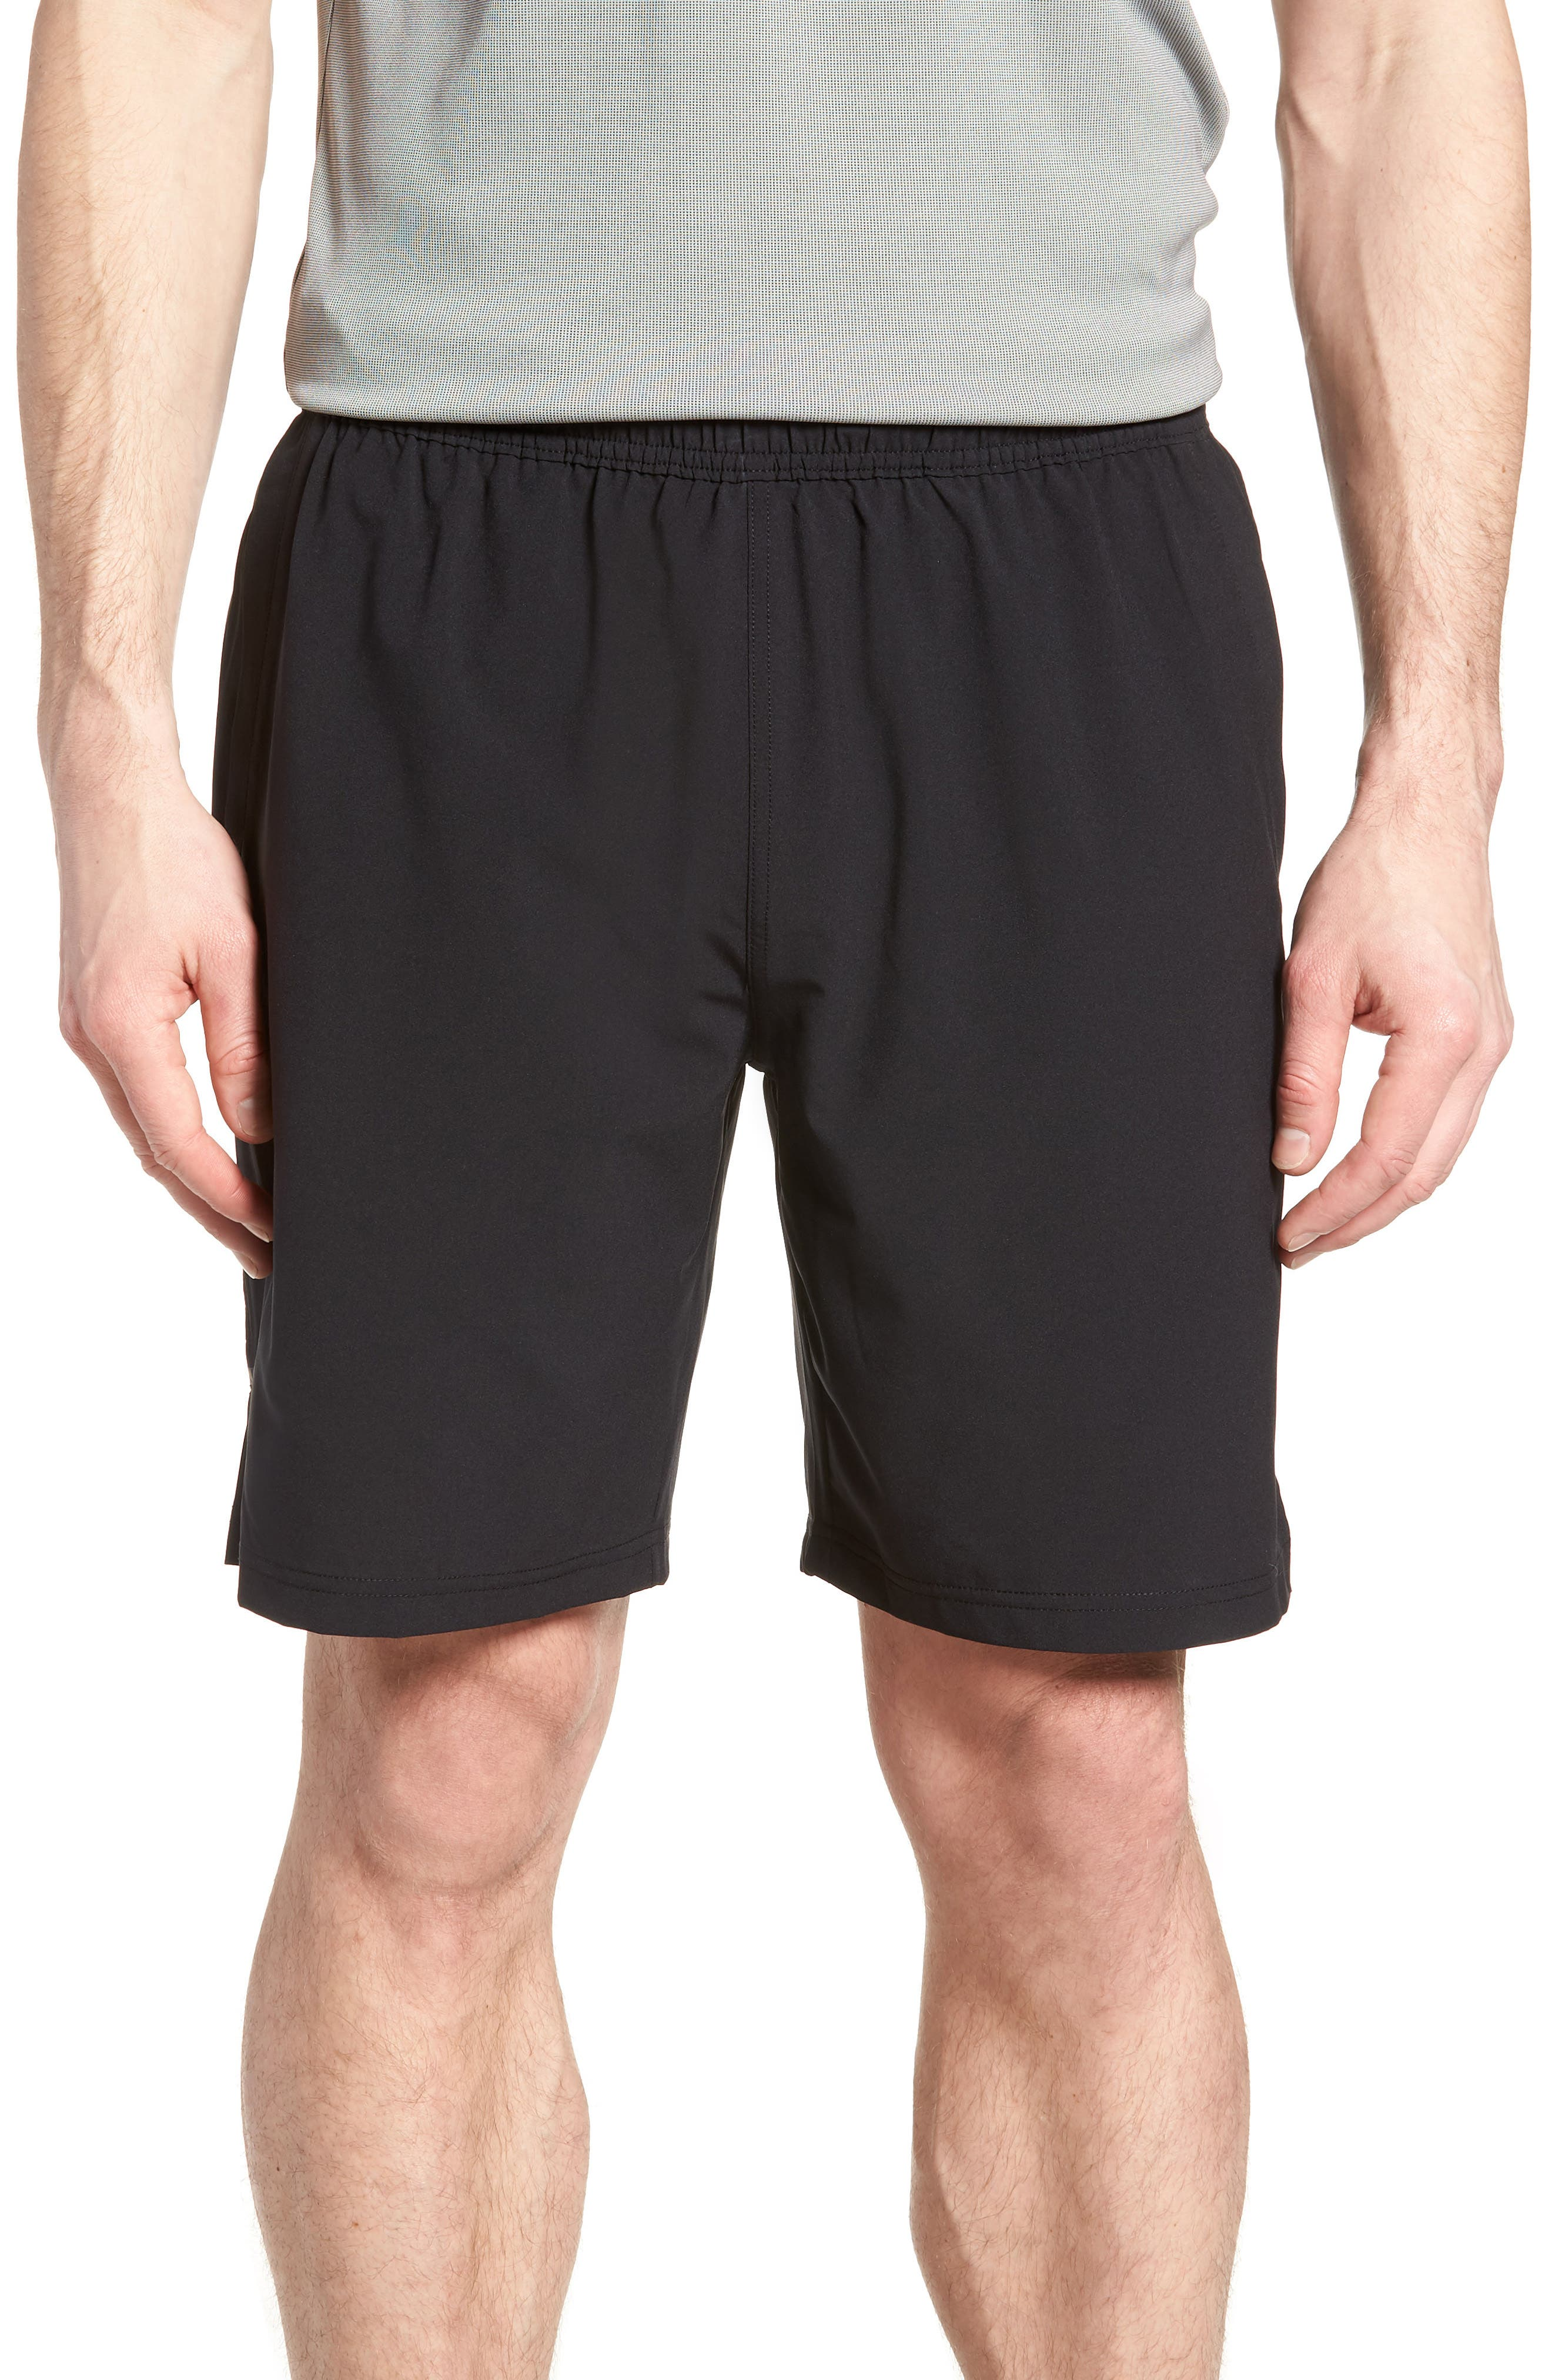 ZELLA Graphite Perforated Shorts, Main, color, BLACK